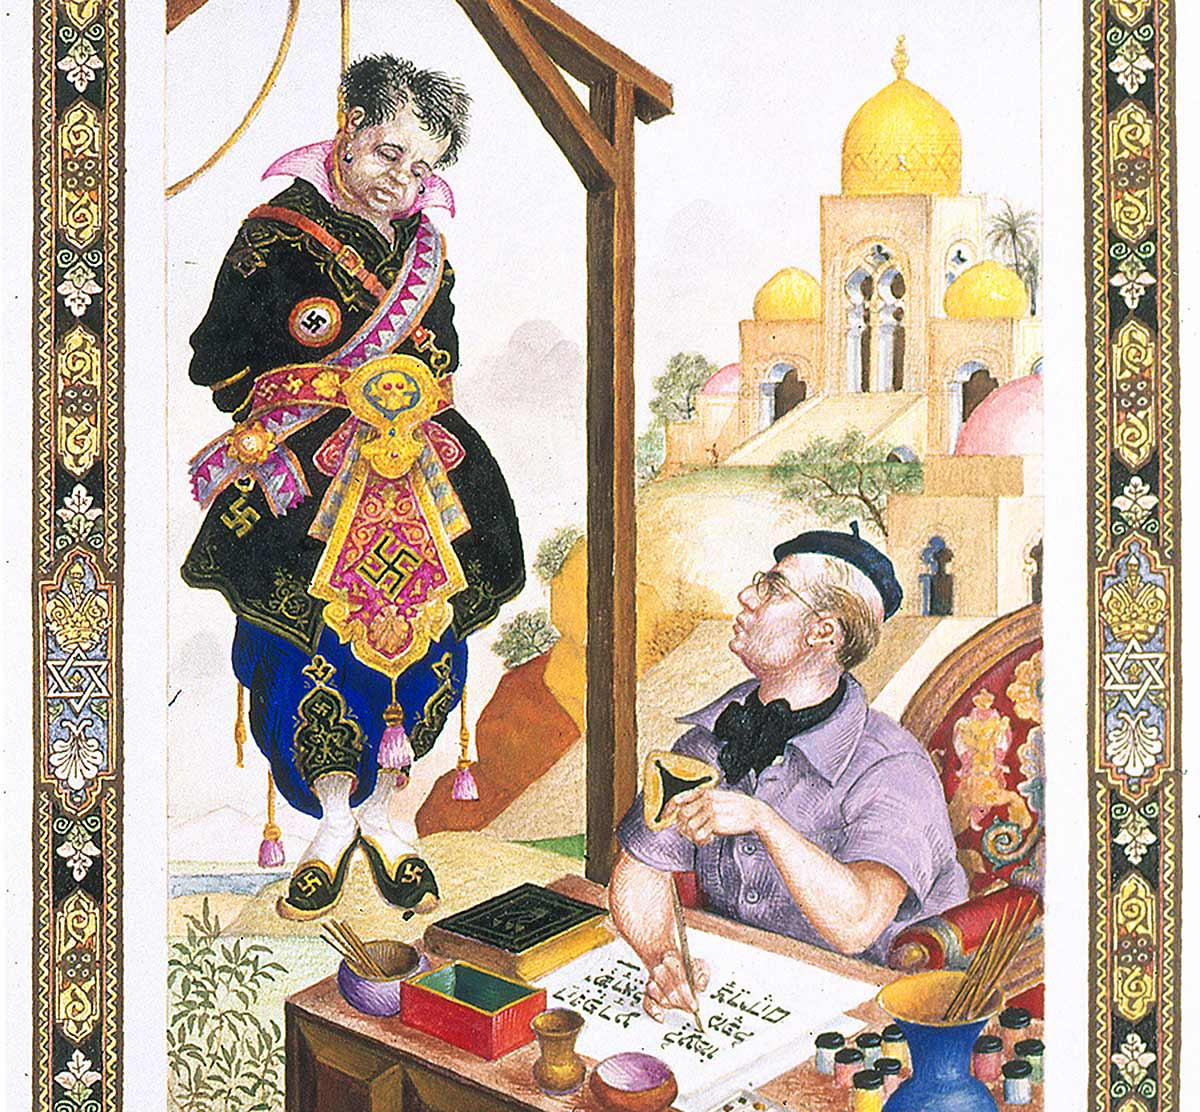 The Book of Esther, Szyk and Haman